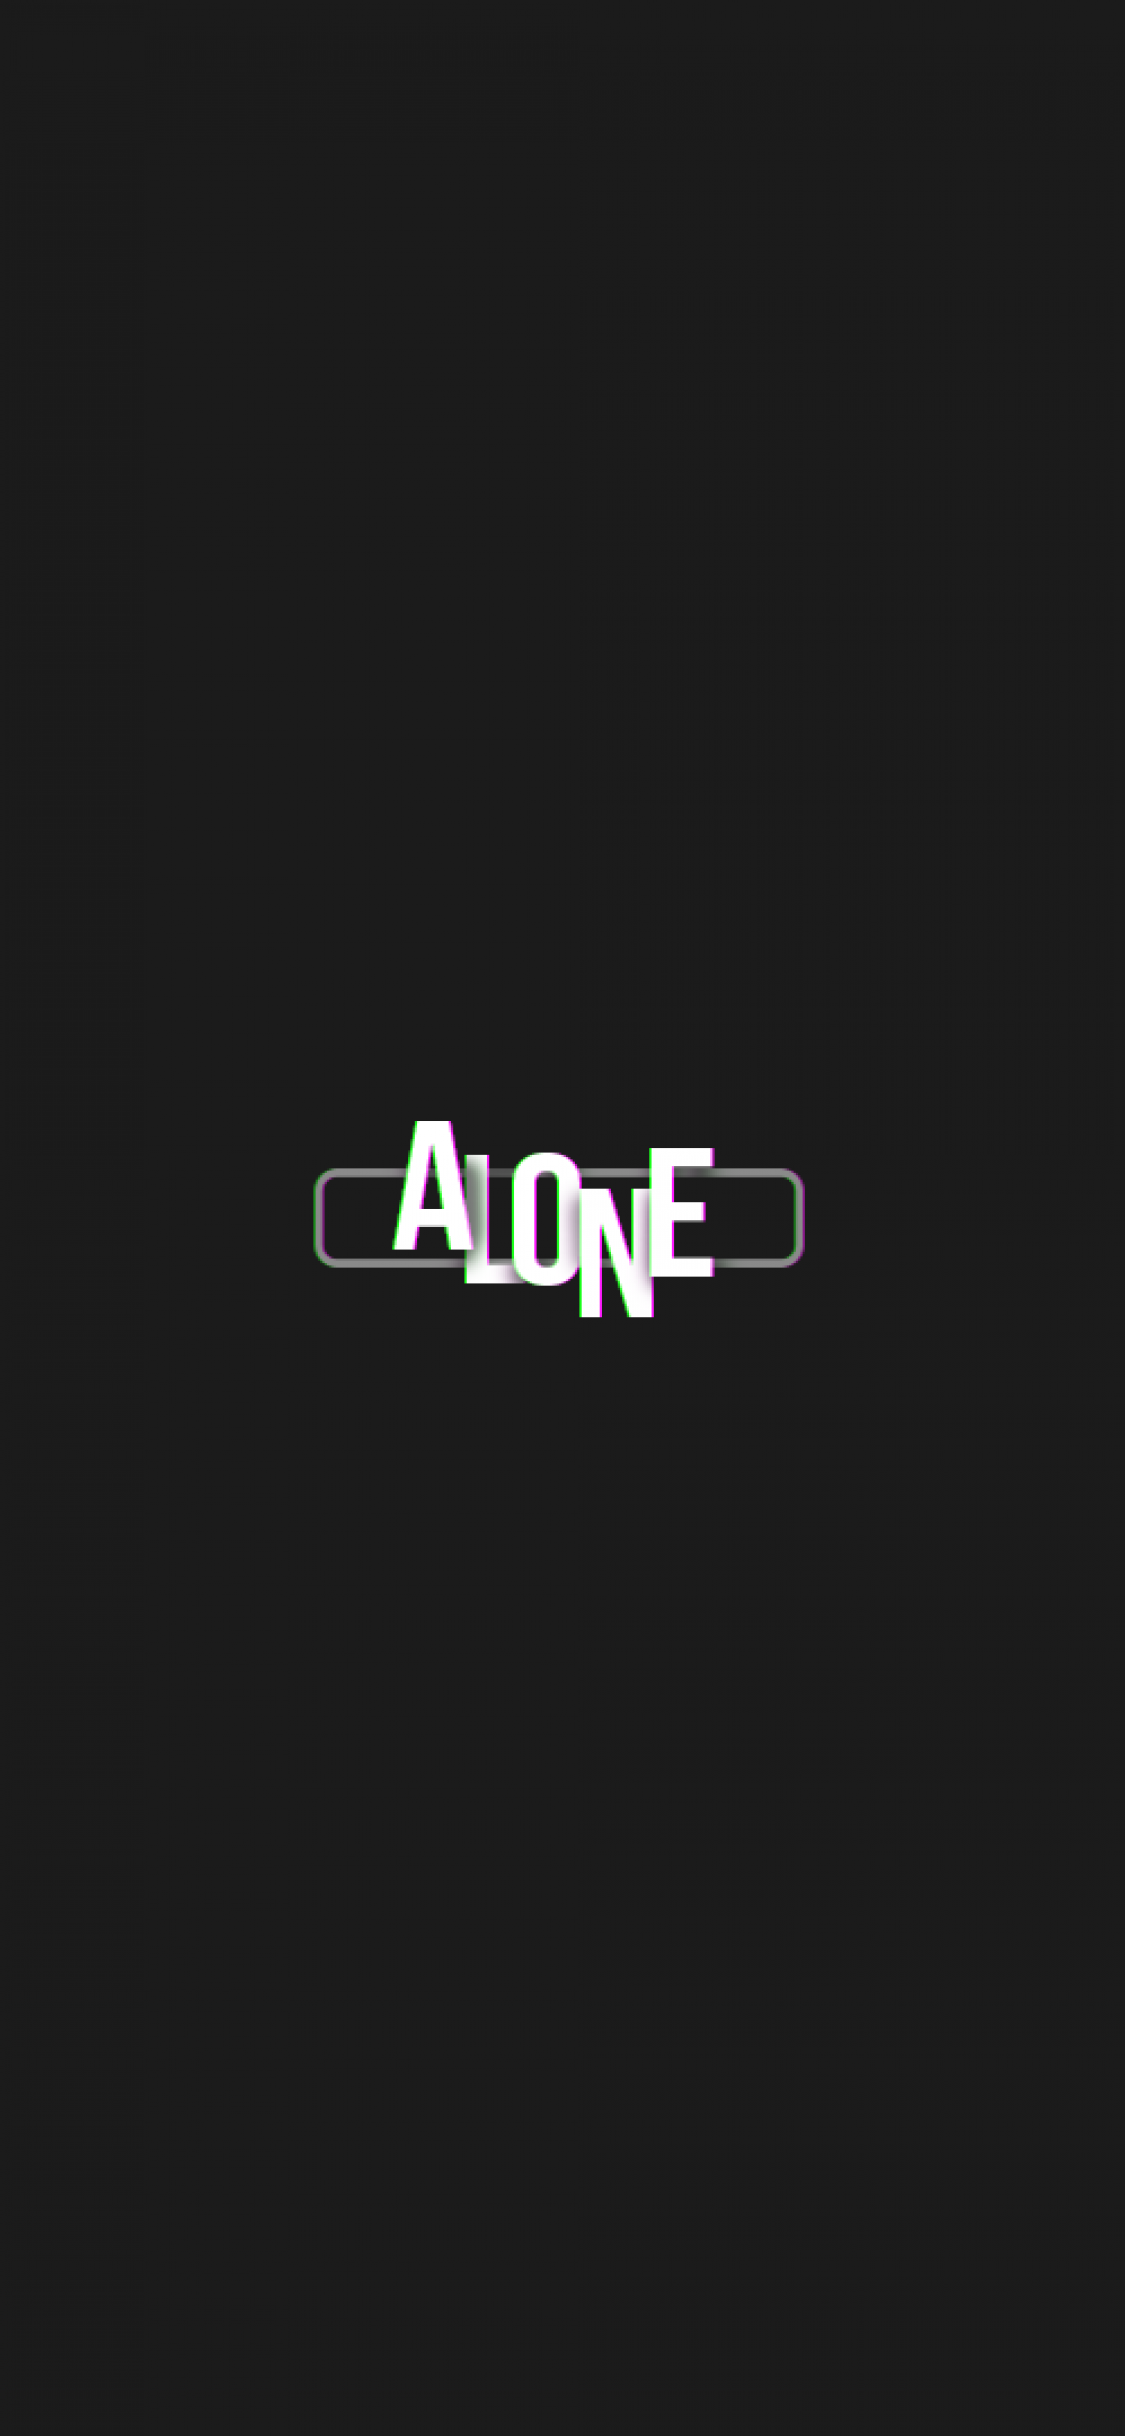 Alone Iphone Wallpapers Top Free Alone Iphone Backgrounds